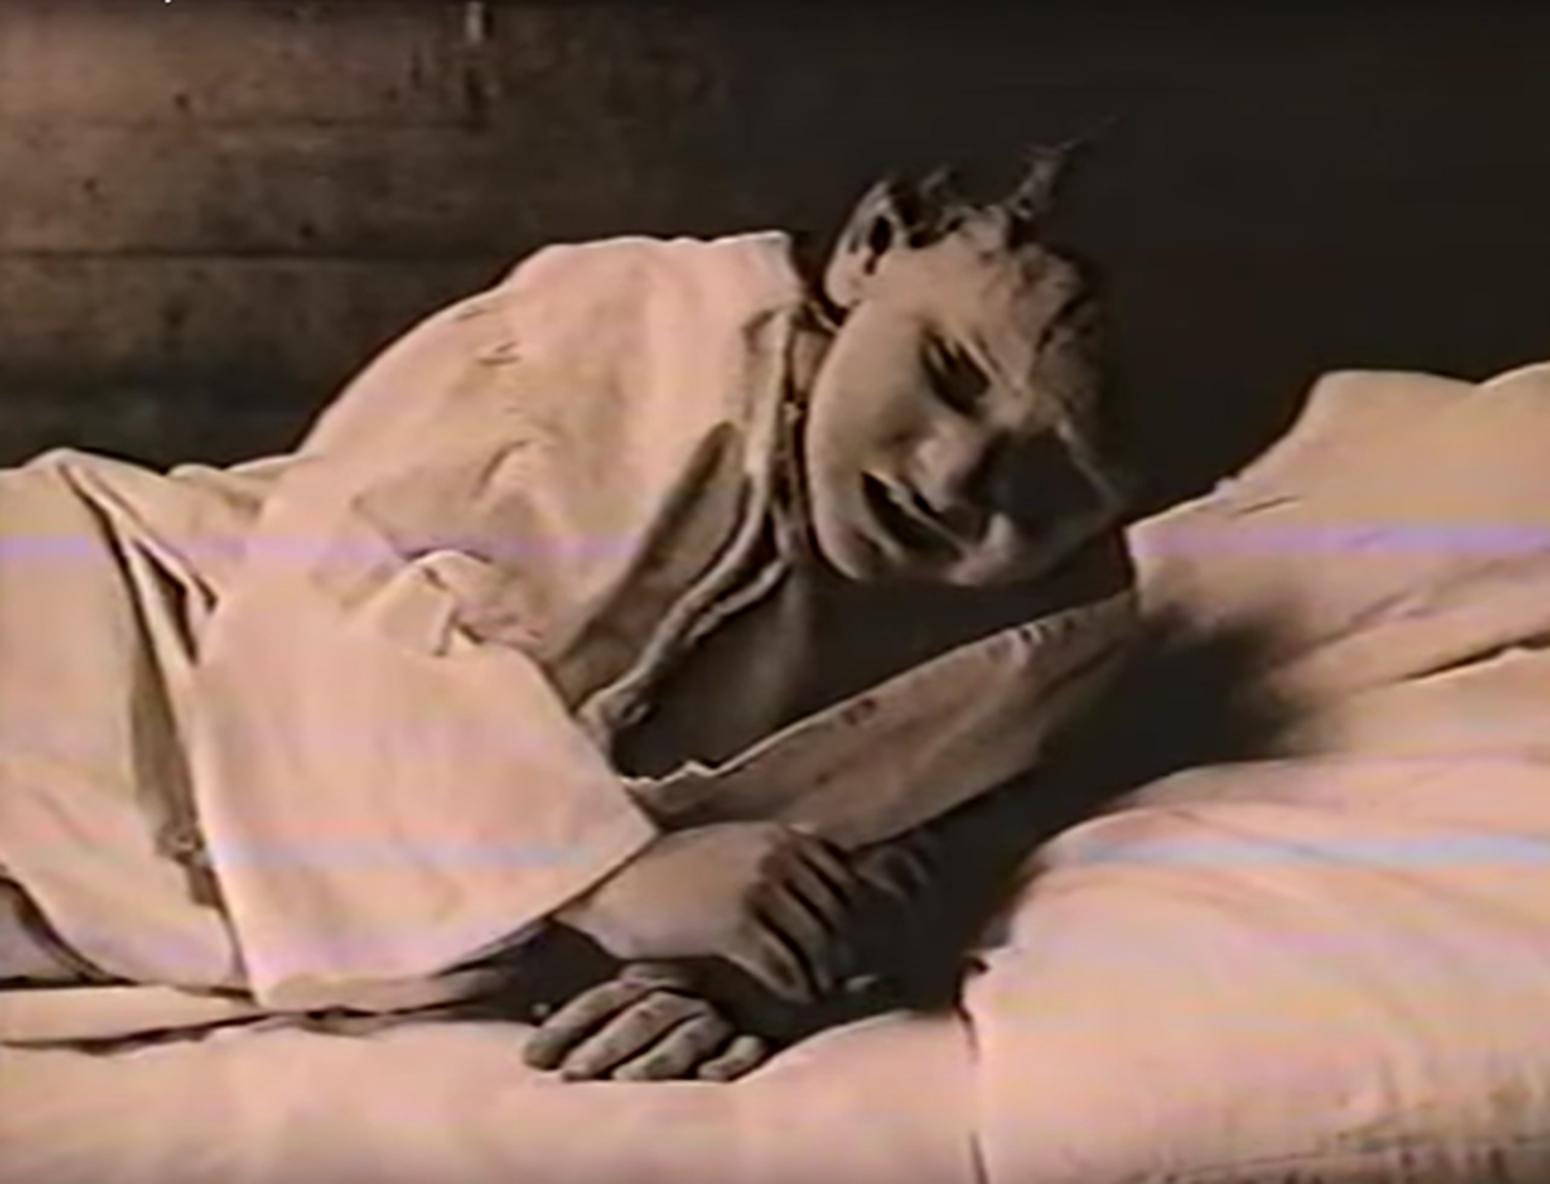 A depiction of Crews at age 5 in Hawkins' documentary.